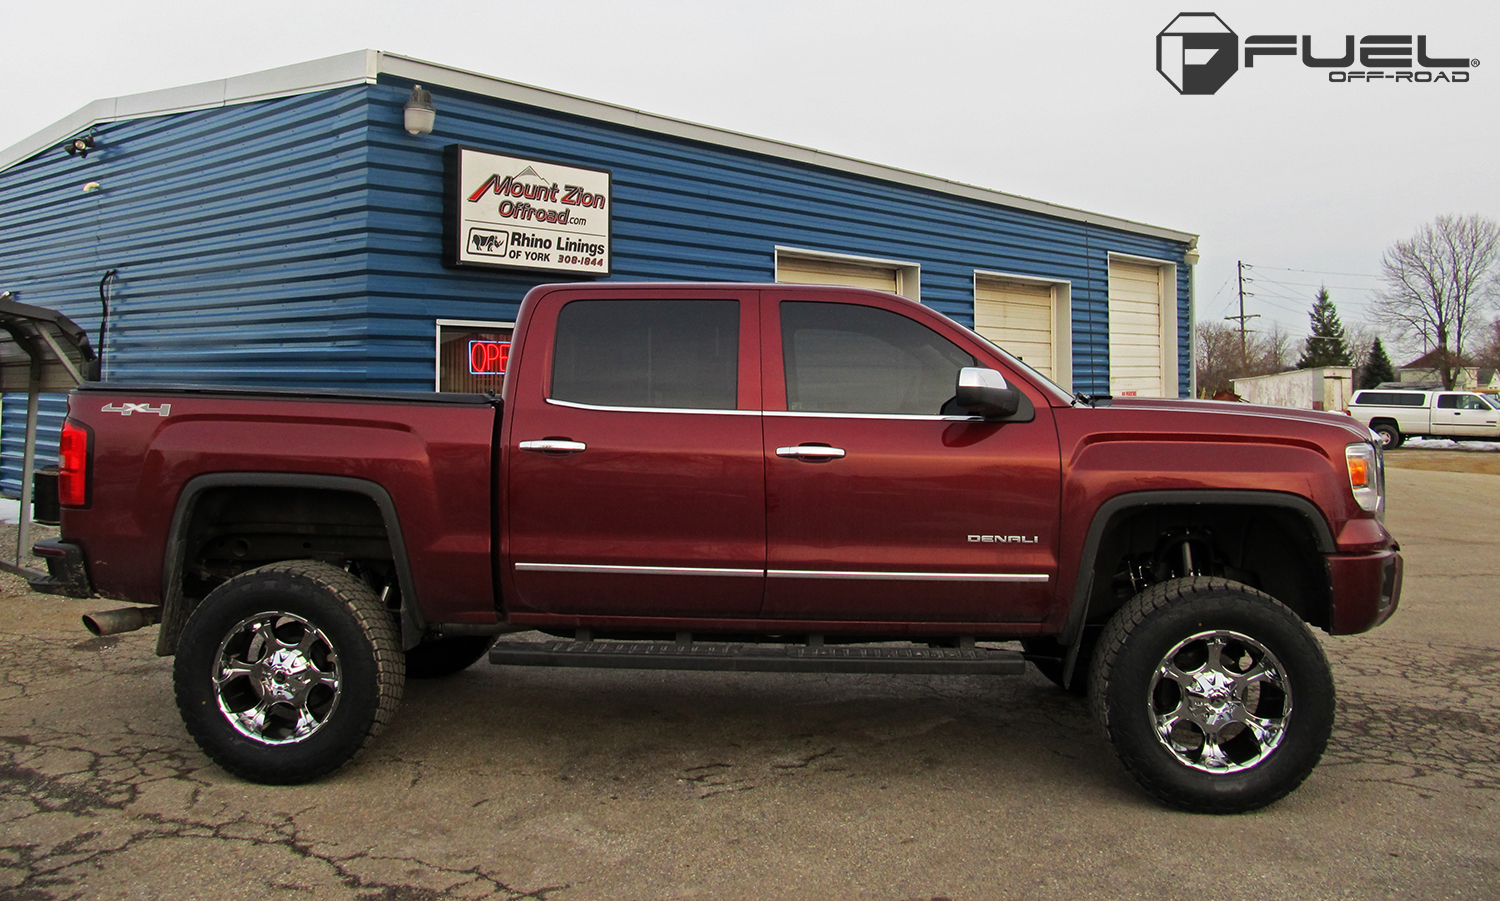 167820 2014 Silverado Ltz 4x4 Leveled 33s Colormatched in addition Ford Lobo Raptor Svt 2014 Se Presenta En El Xxvii Gran Concurso together with 2015 Gmc Canyon Sle 4x4 V6 Review Full Size Experience Mid Size Wrapper besides 1084 Gmc C4500 Topkick 6x6 as well Obs F350 For Sale. on 2014 gmc terrain 4x4